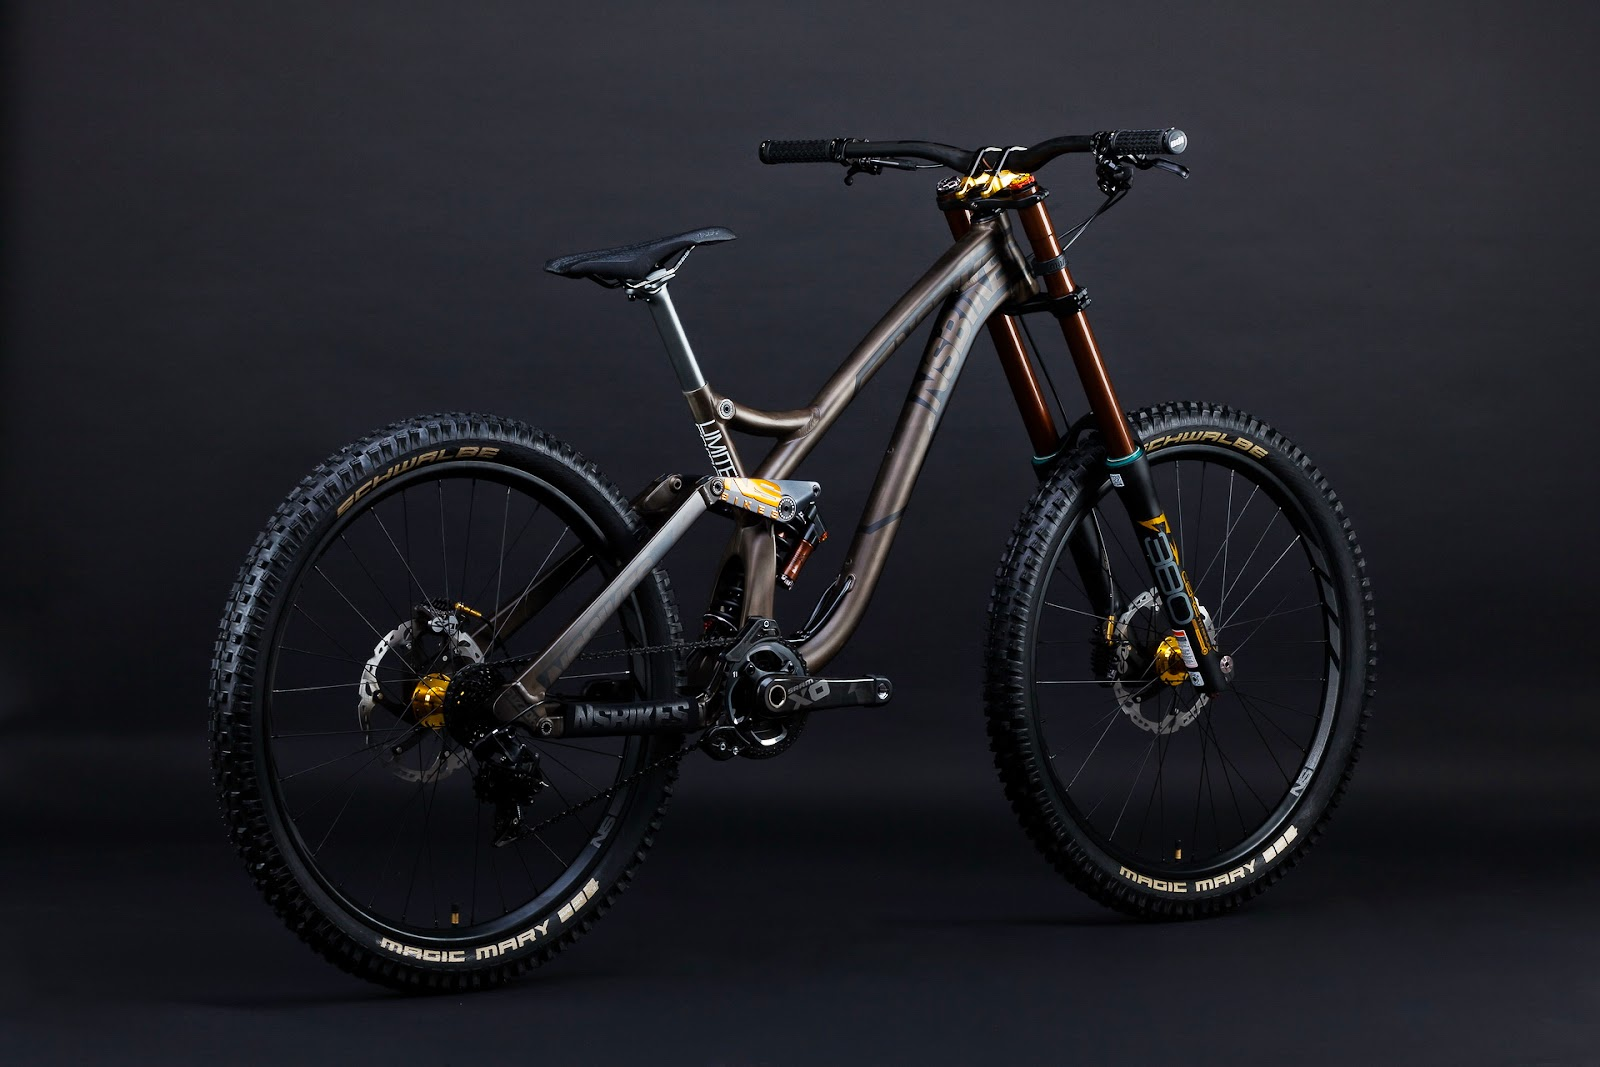 Bikes Limited makes this bike a limited